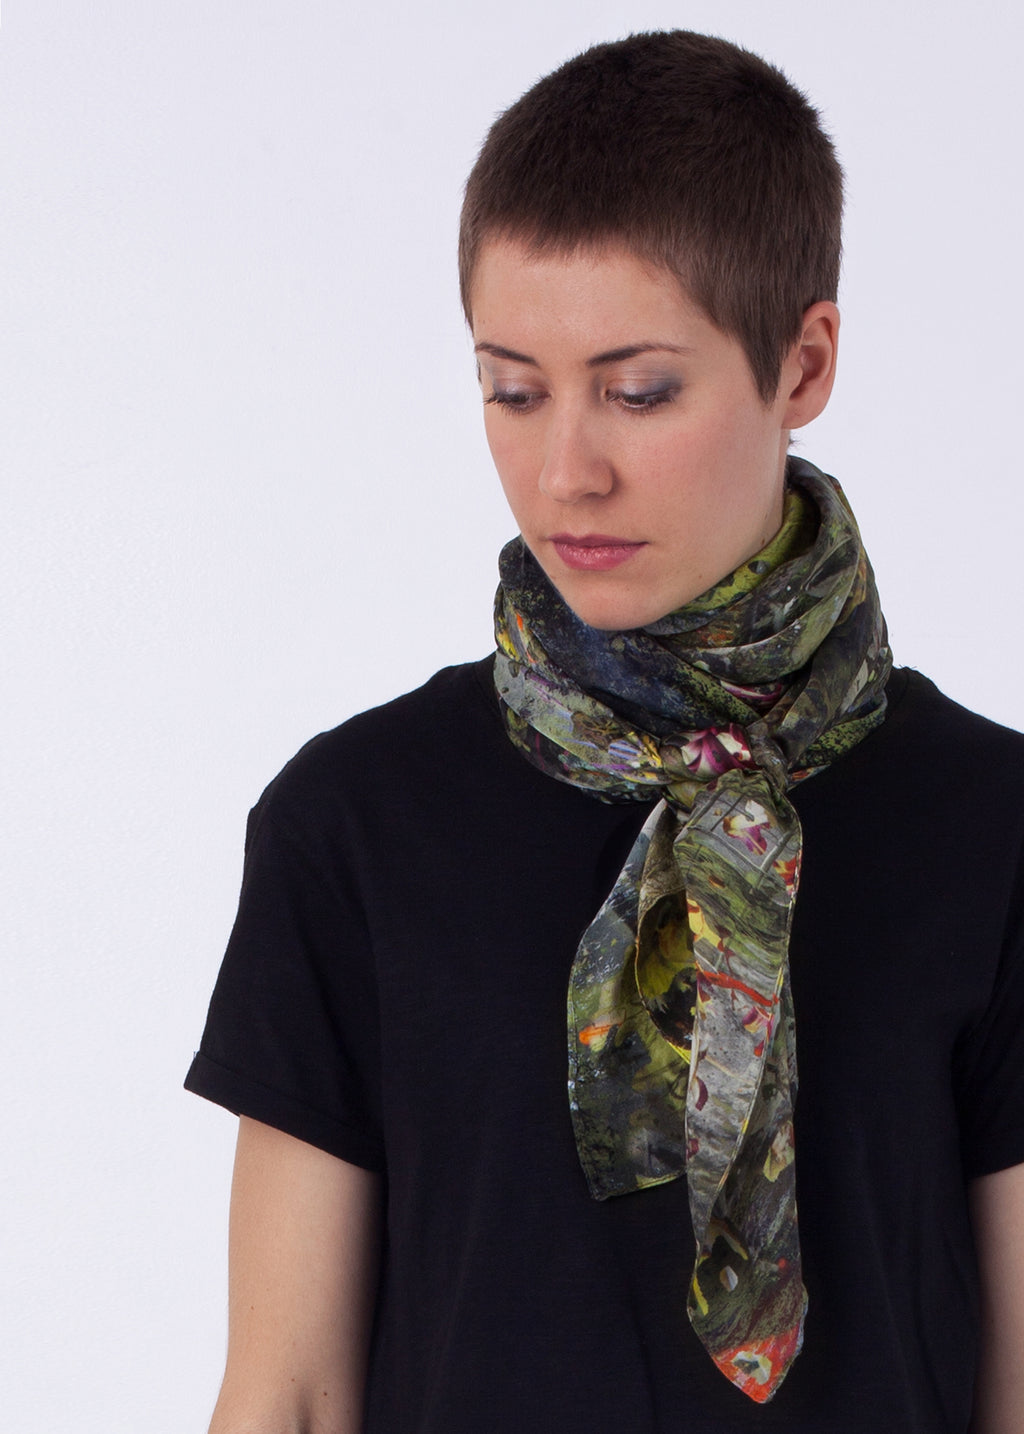 #lesslandfill Picture Silk Scarf, ethical fashion, sustainable fashion, designer clothes, plus size clothing, textile print clothing, luxury online fashion